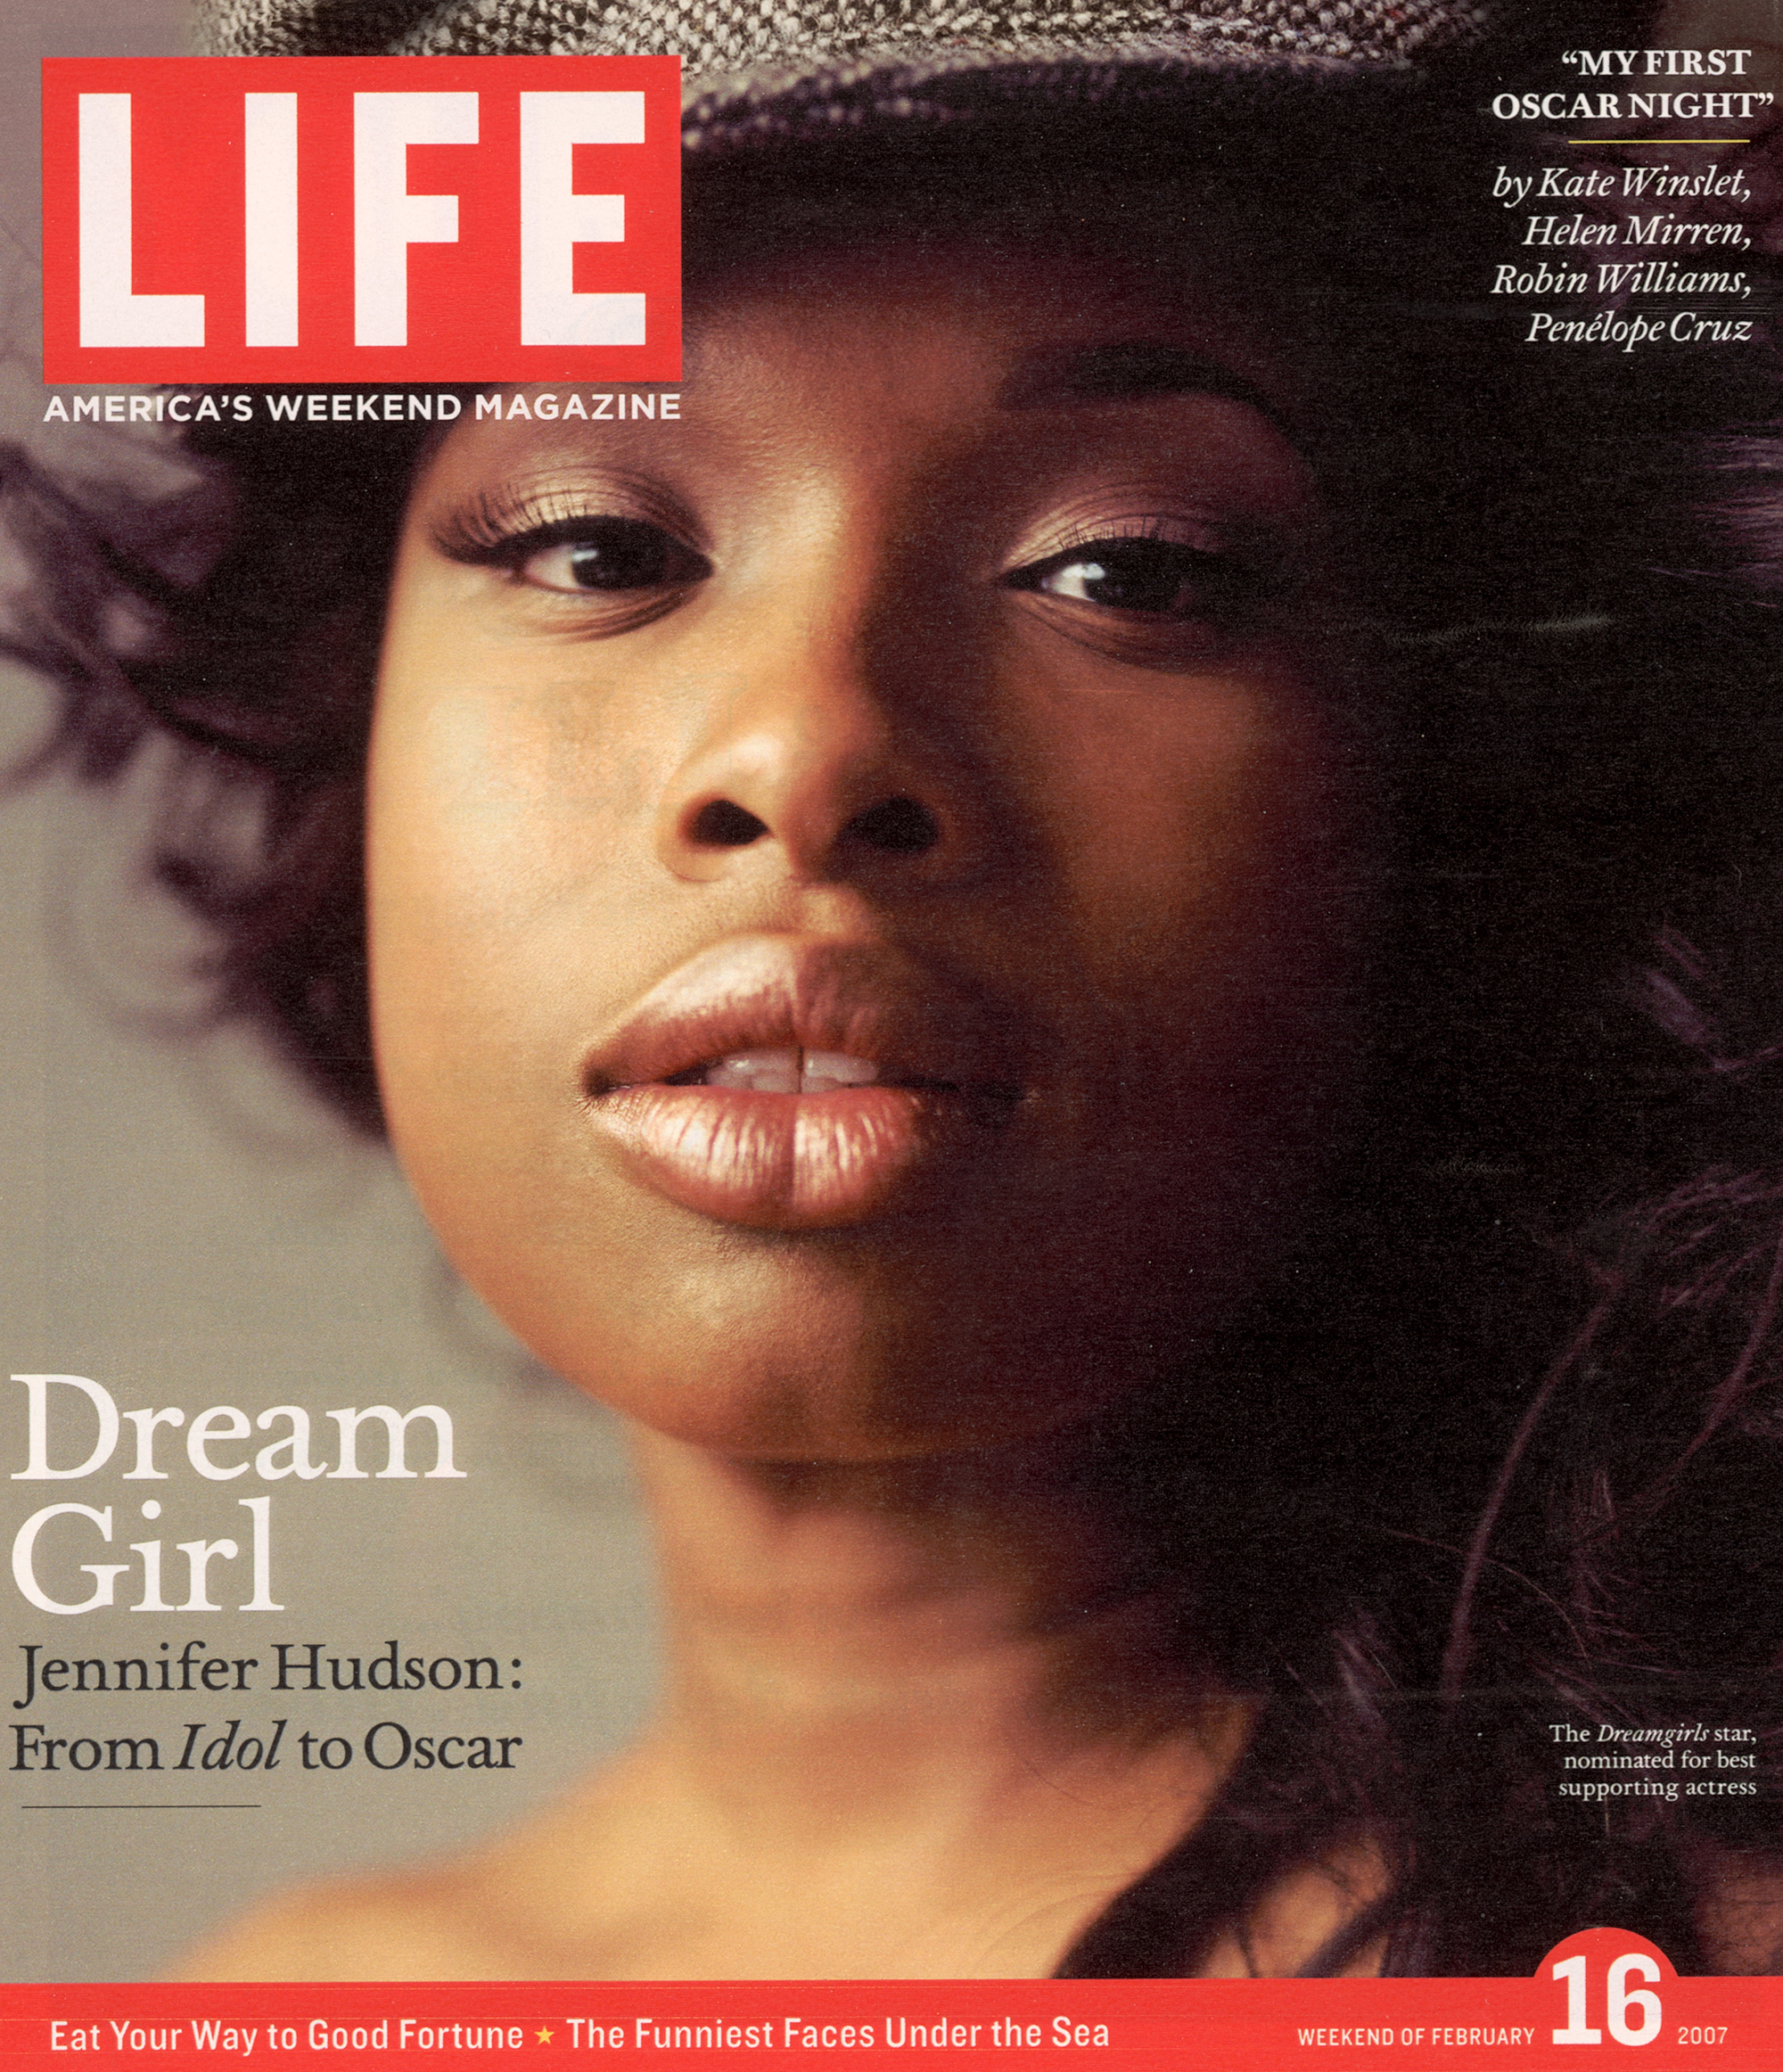 Portrait of Academy Award nominee Jennifer Hudson on LIFE Cover 02-16-2007.